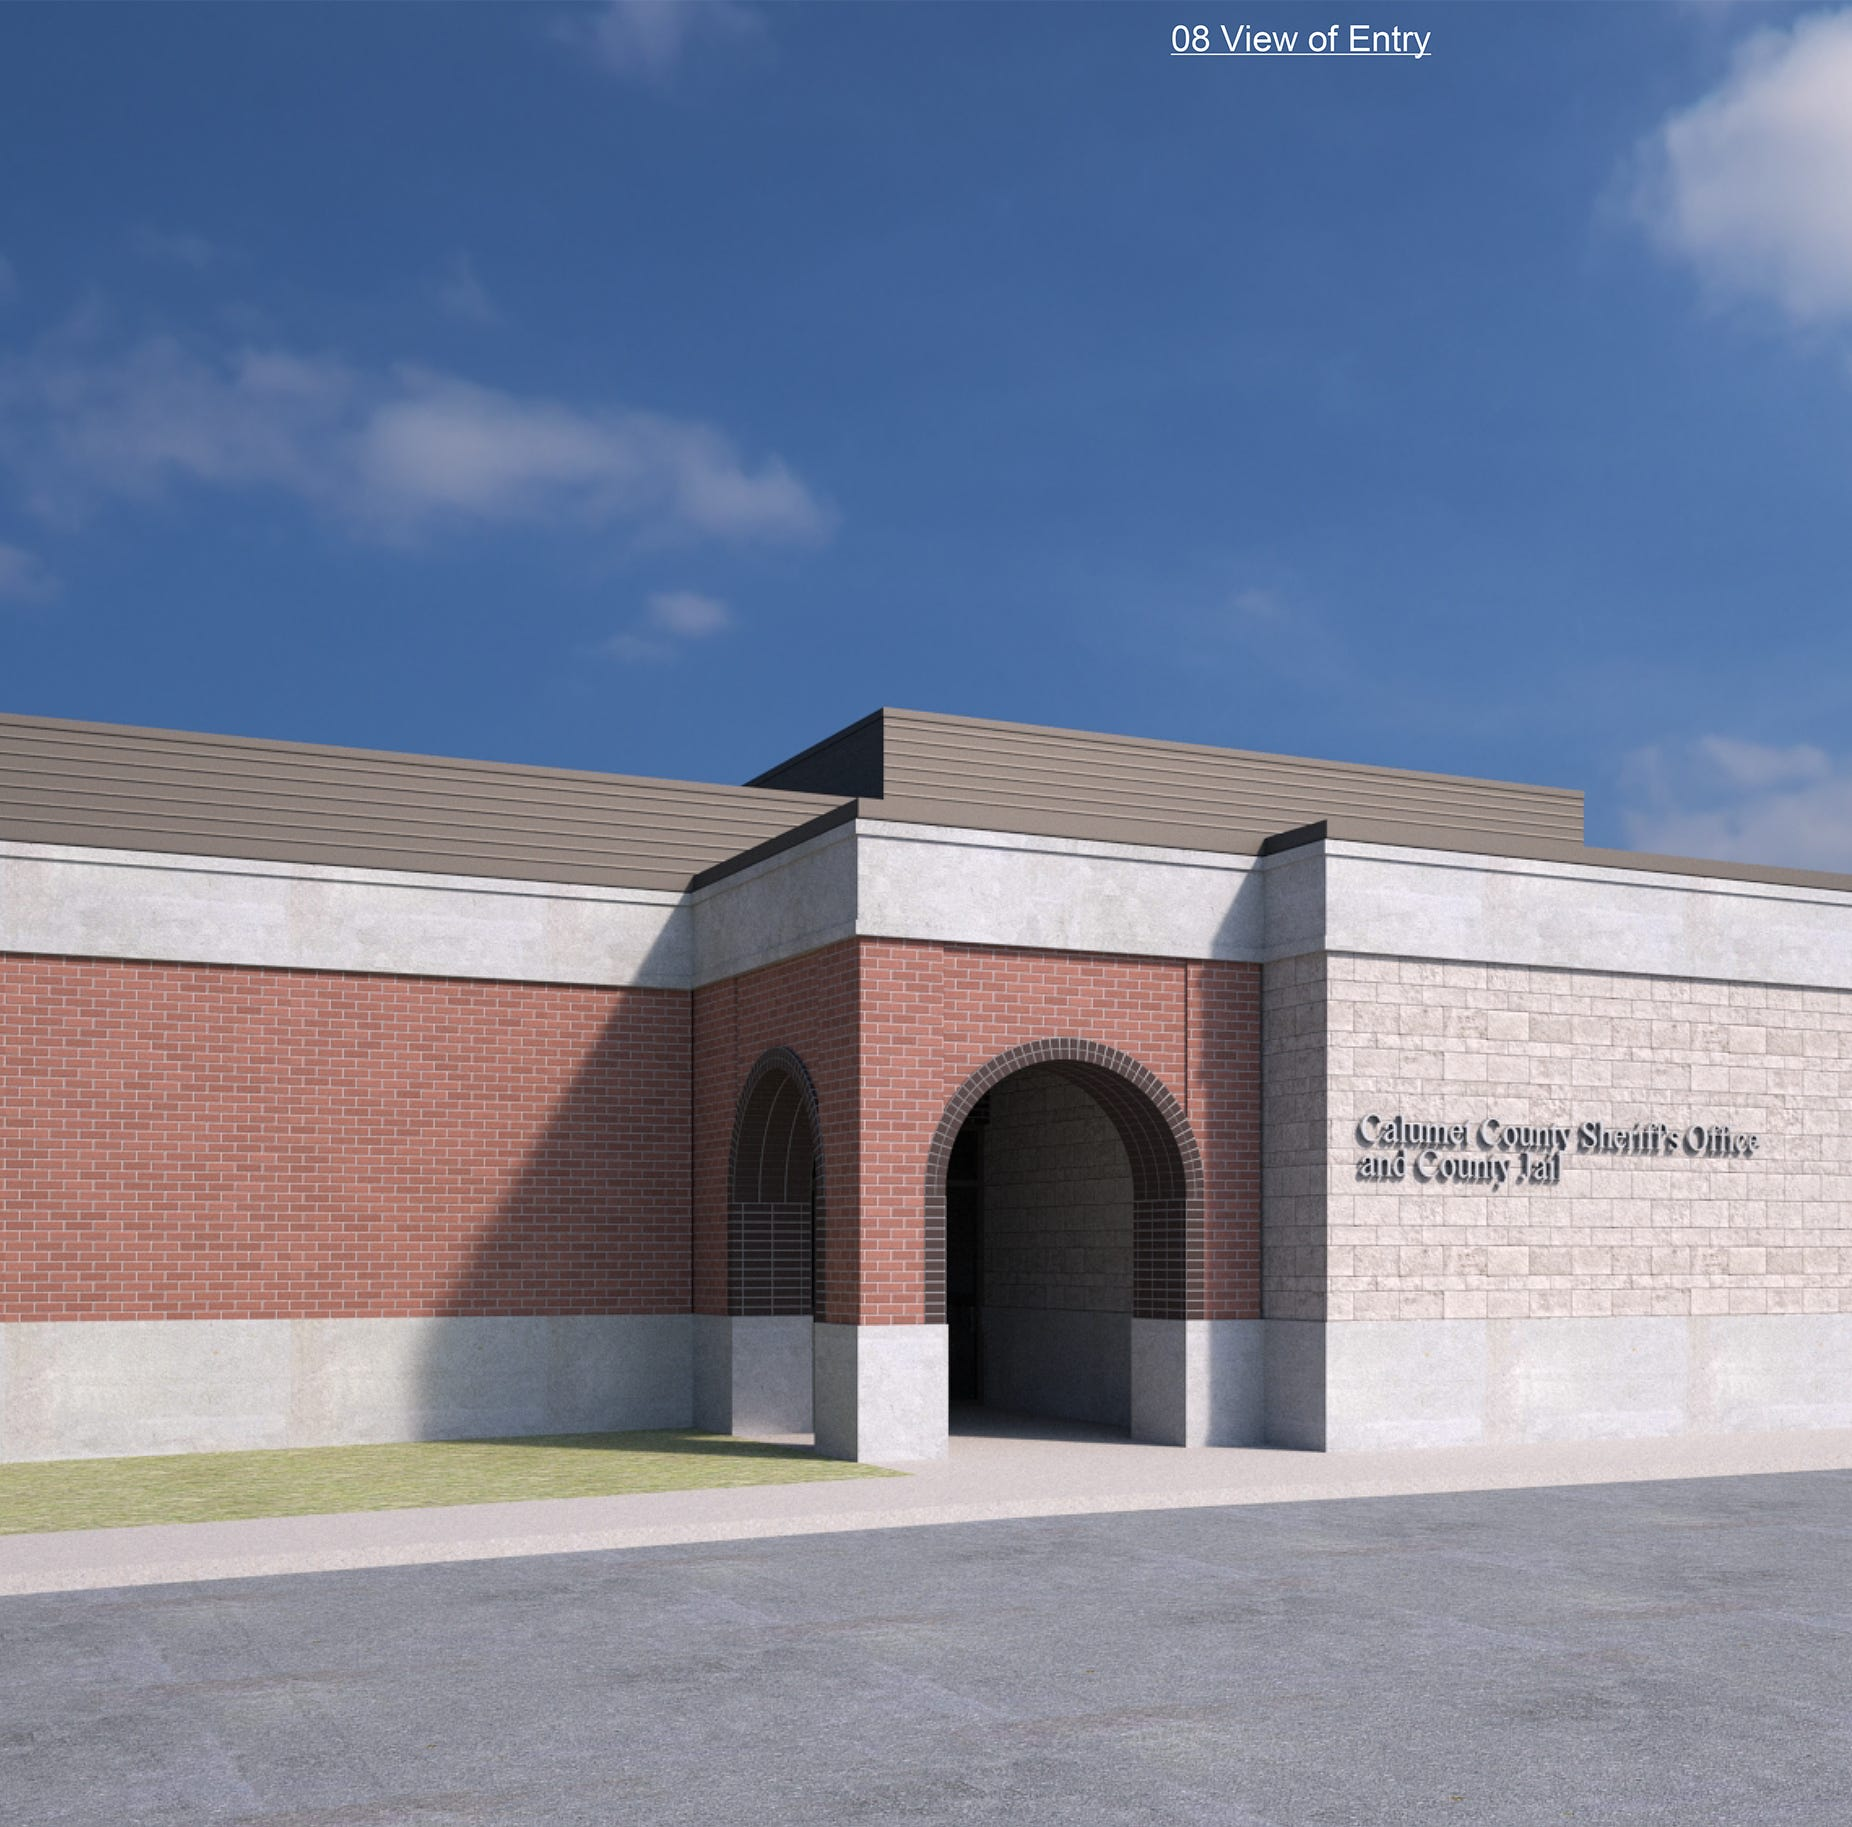 Calumet County considers spending $35 million for new sheriff's office and jail in Chilton